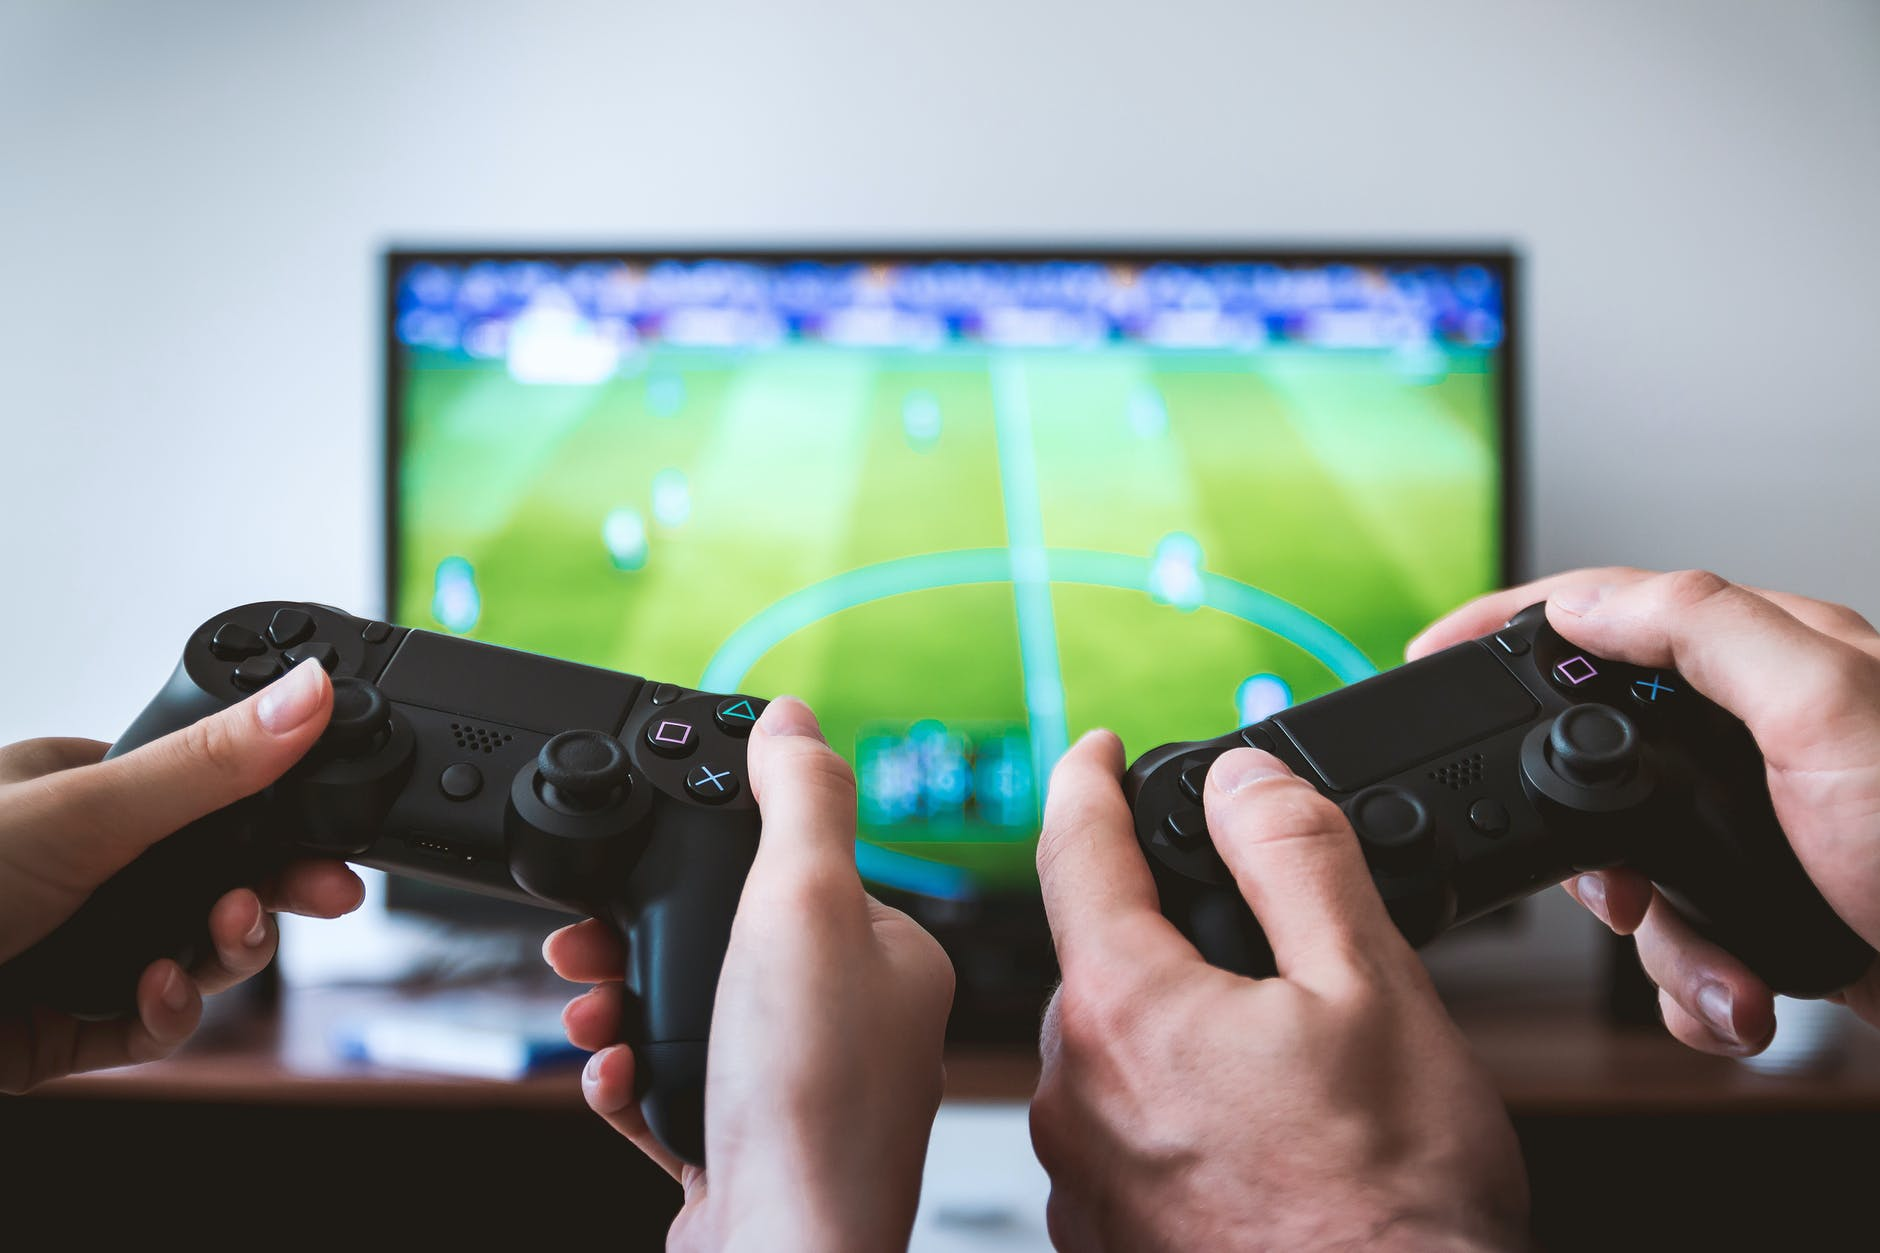 5 Kids' Important Life Lessons while Playing Video Games